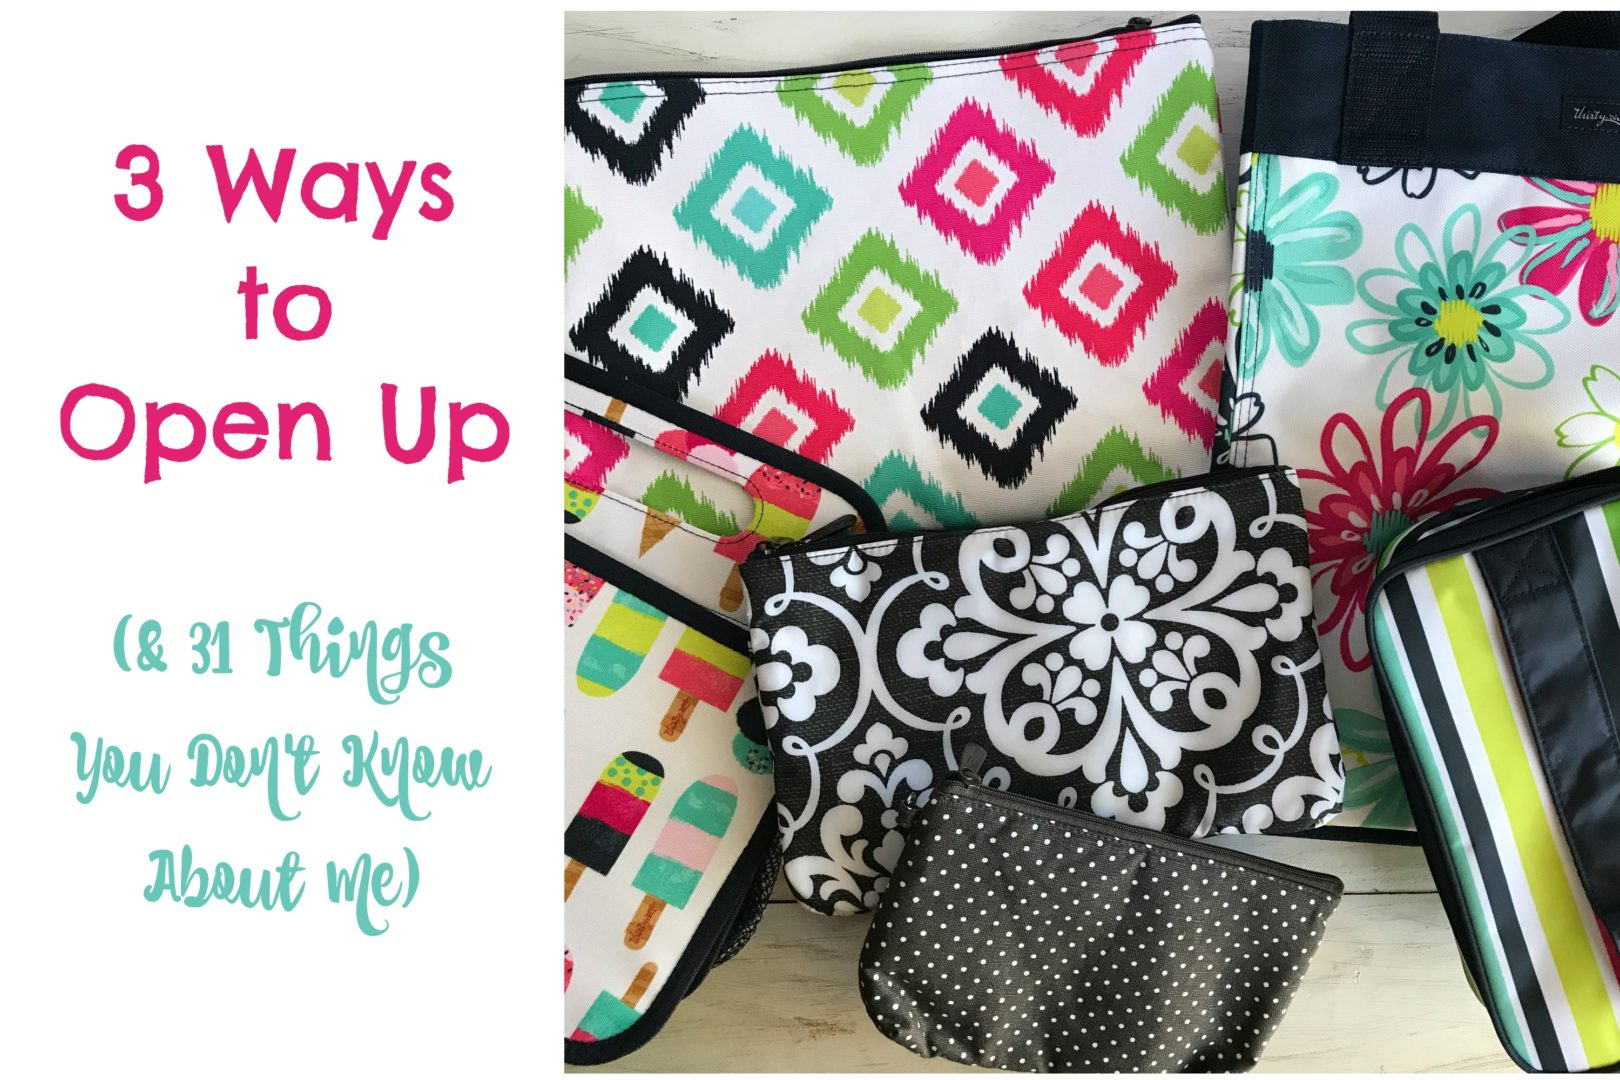 3 Ways to Open Up (And 31 Things About Me!) | Always Moving Mommy | It's not easy opening up after being hurt, but these three tips can help.